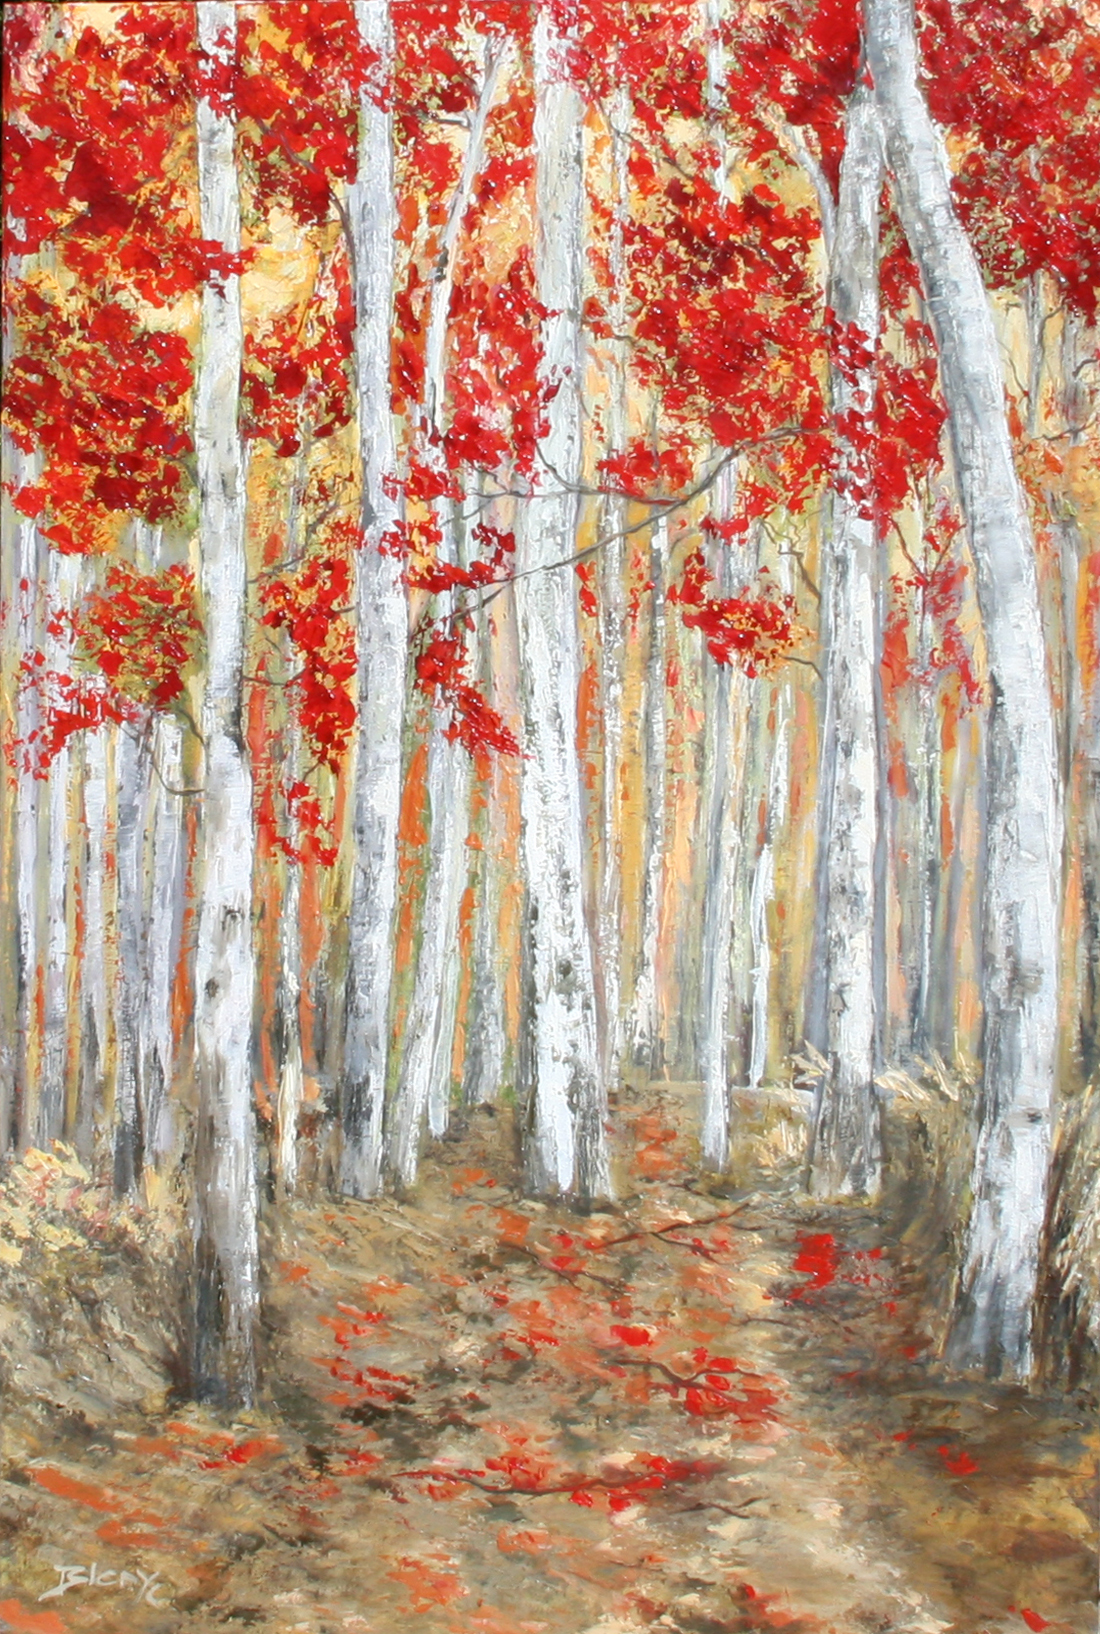 Red birch trees - sold